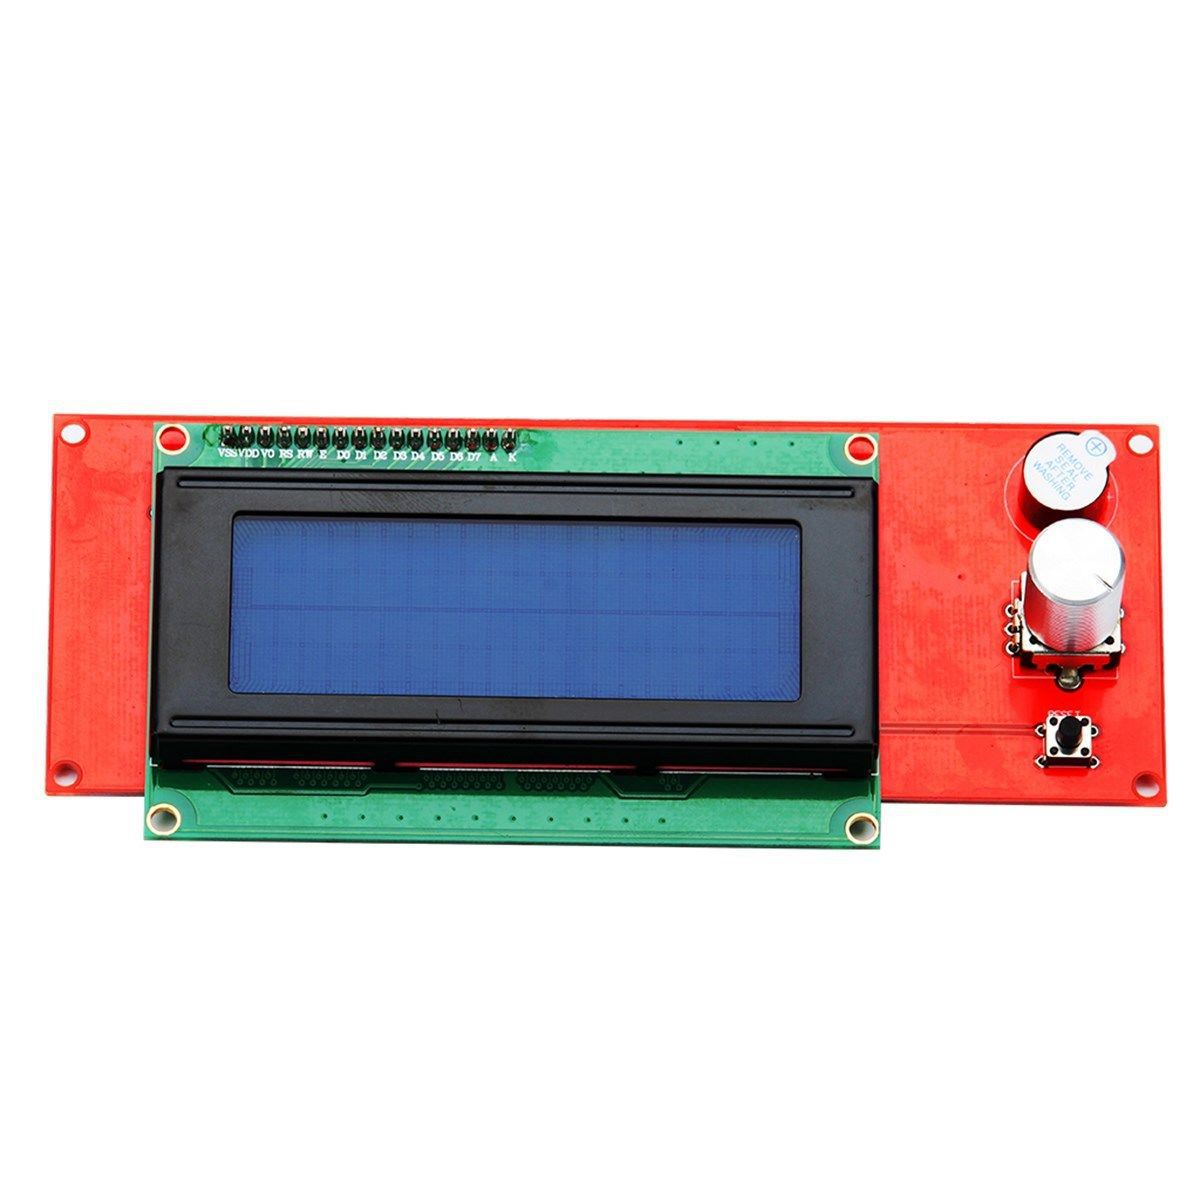 1PC Durable Mini-Rambo 1.3 Control PCB Board and LCD Screen Kit 3D Printing Part-SCLL